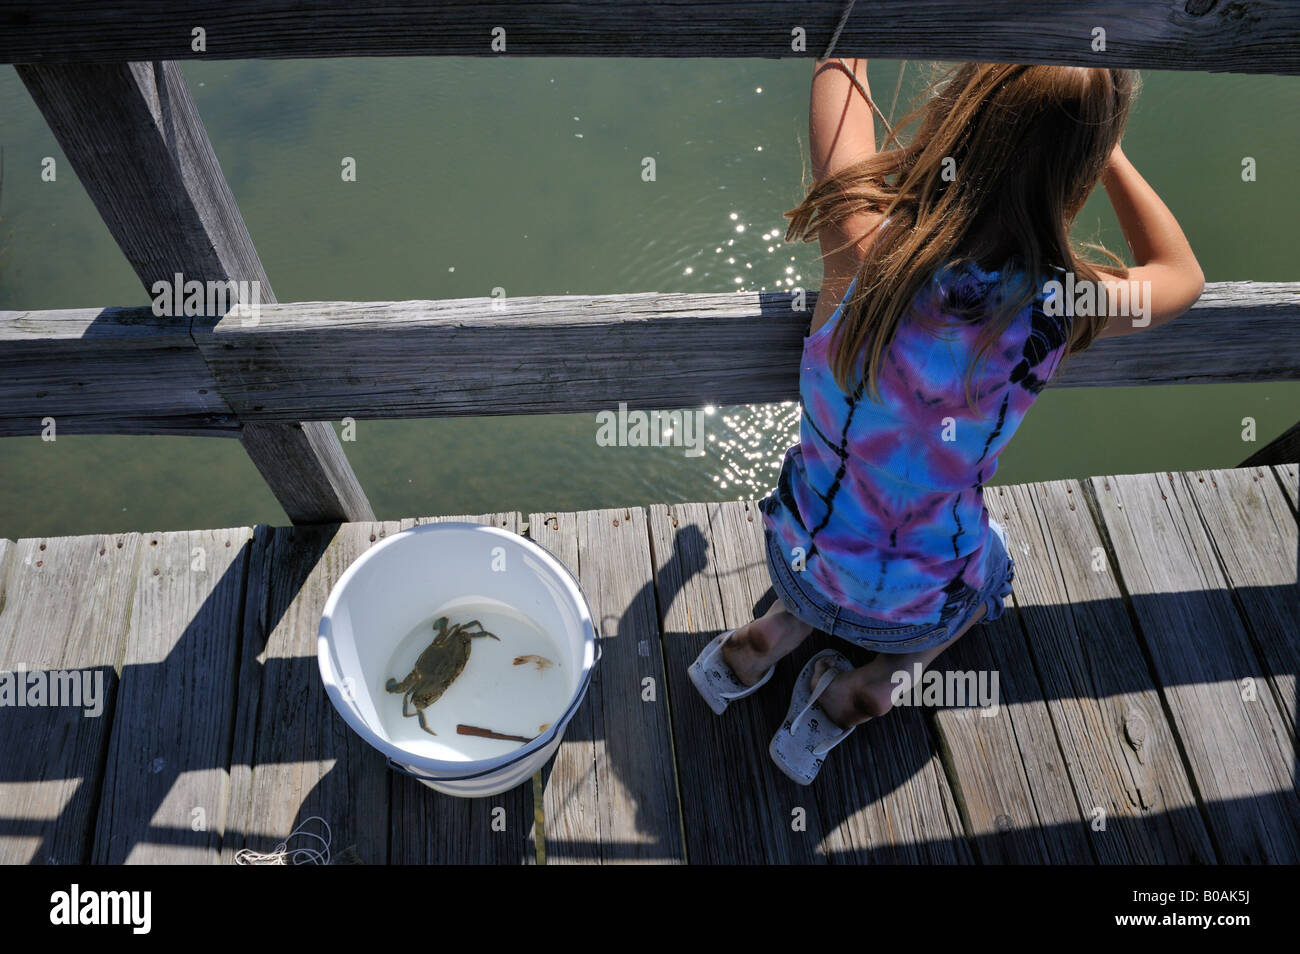 Young girl crab fishing from pier at Hunting Island South Carolina, USA. Stock Photo